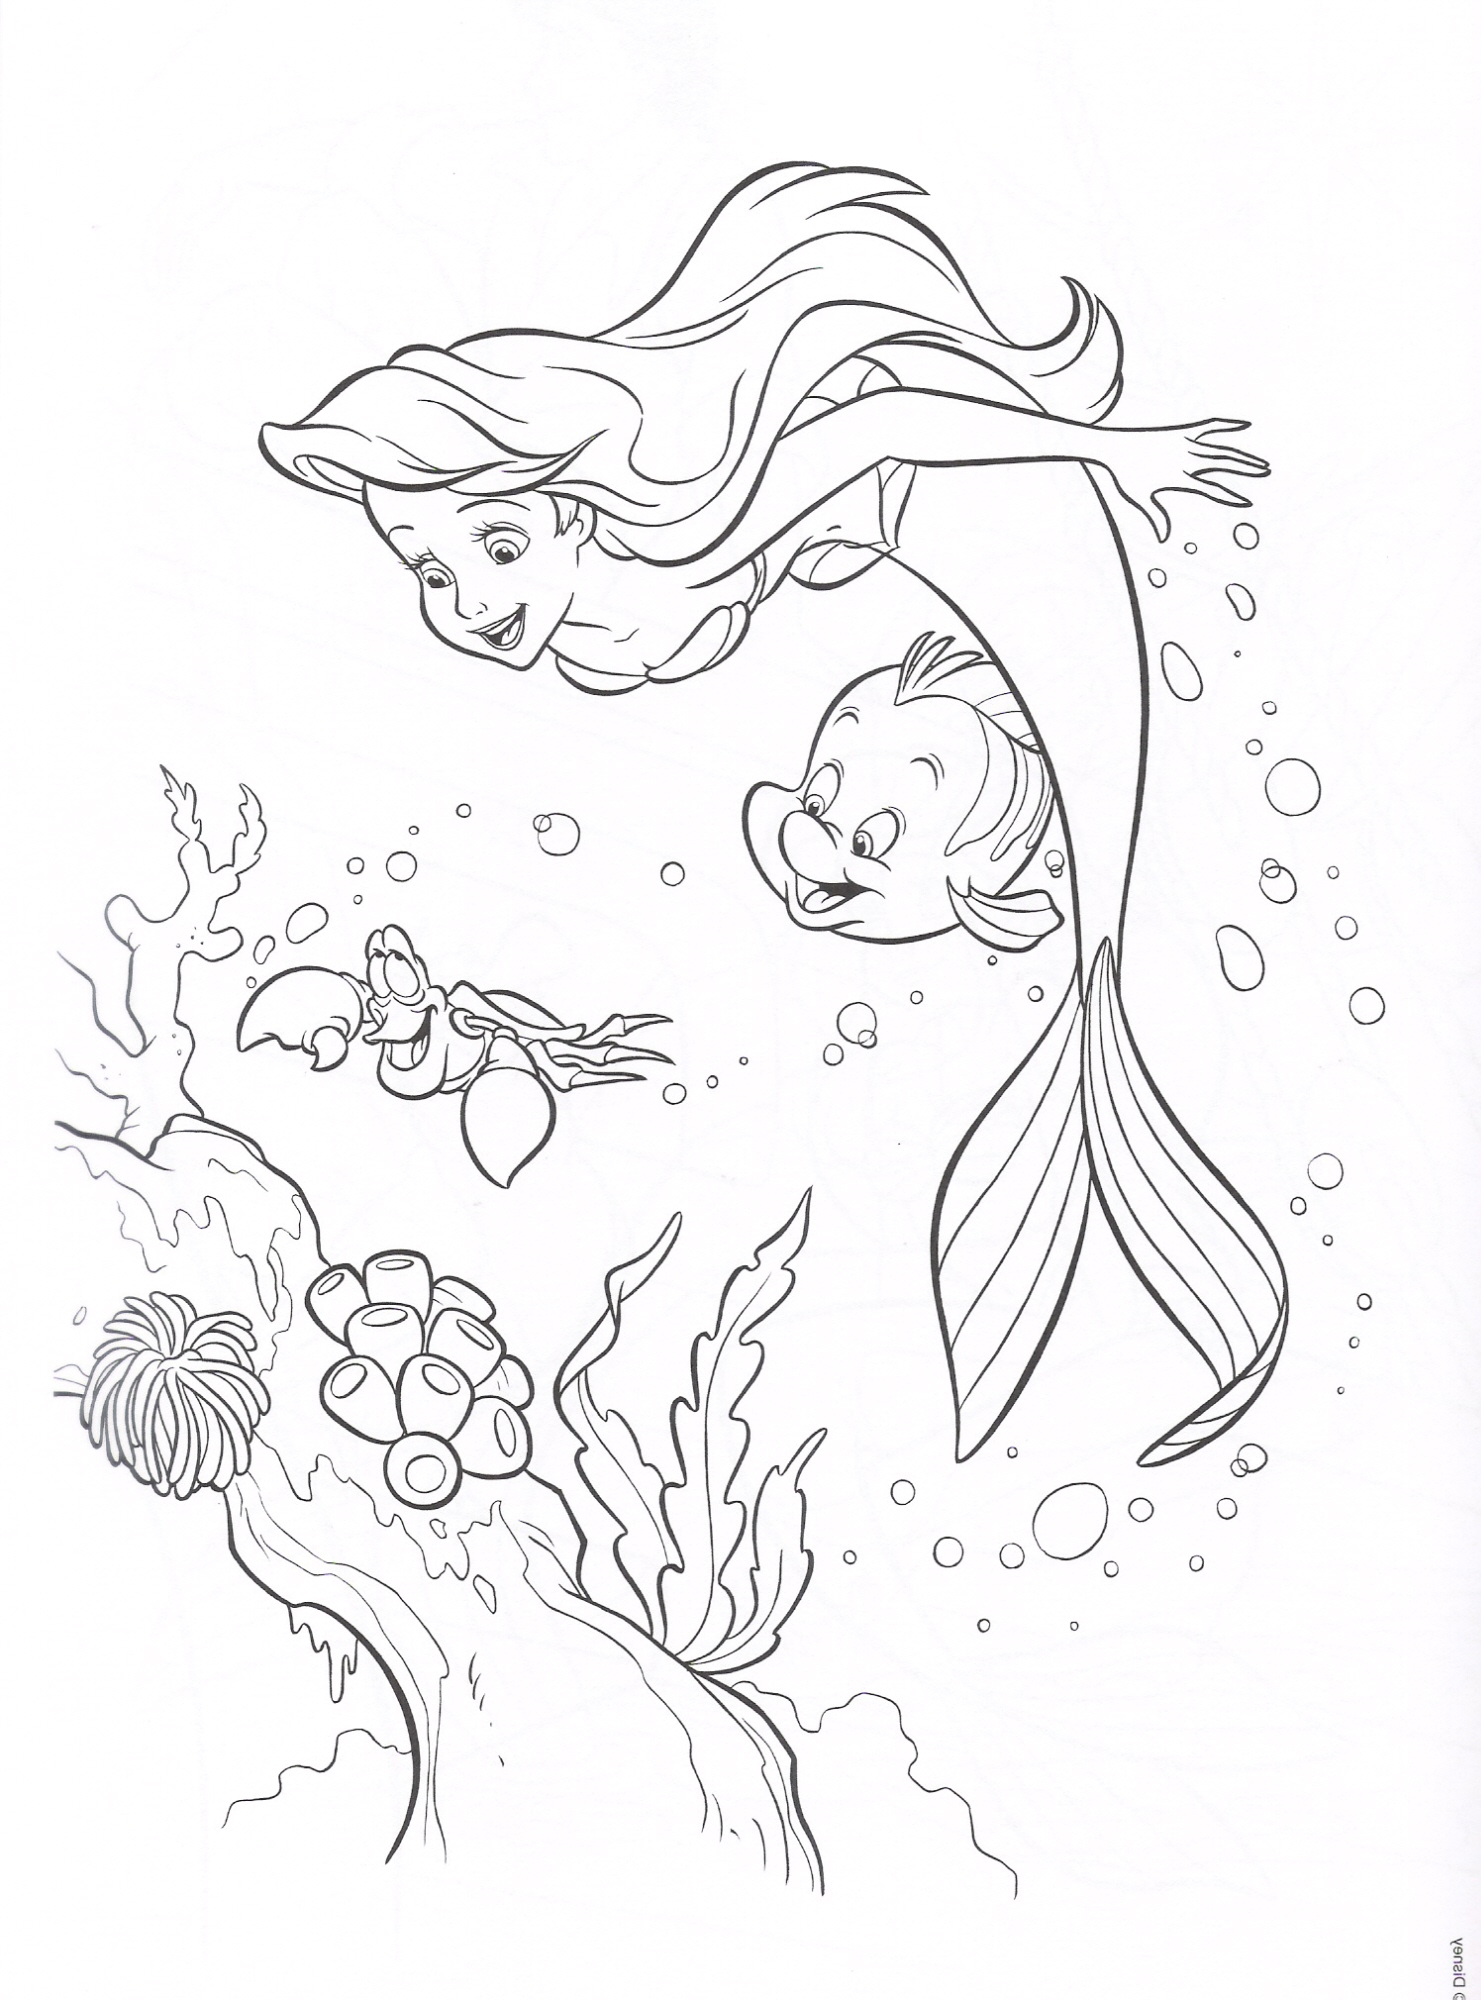 ariel printable coloring pages - photo#34